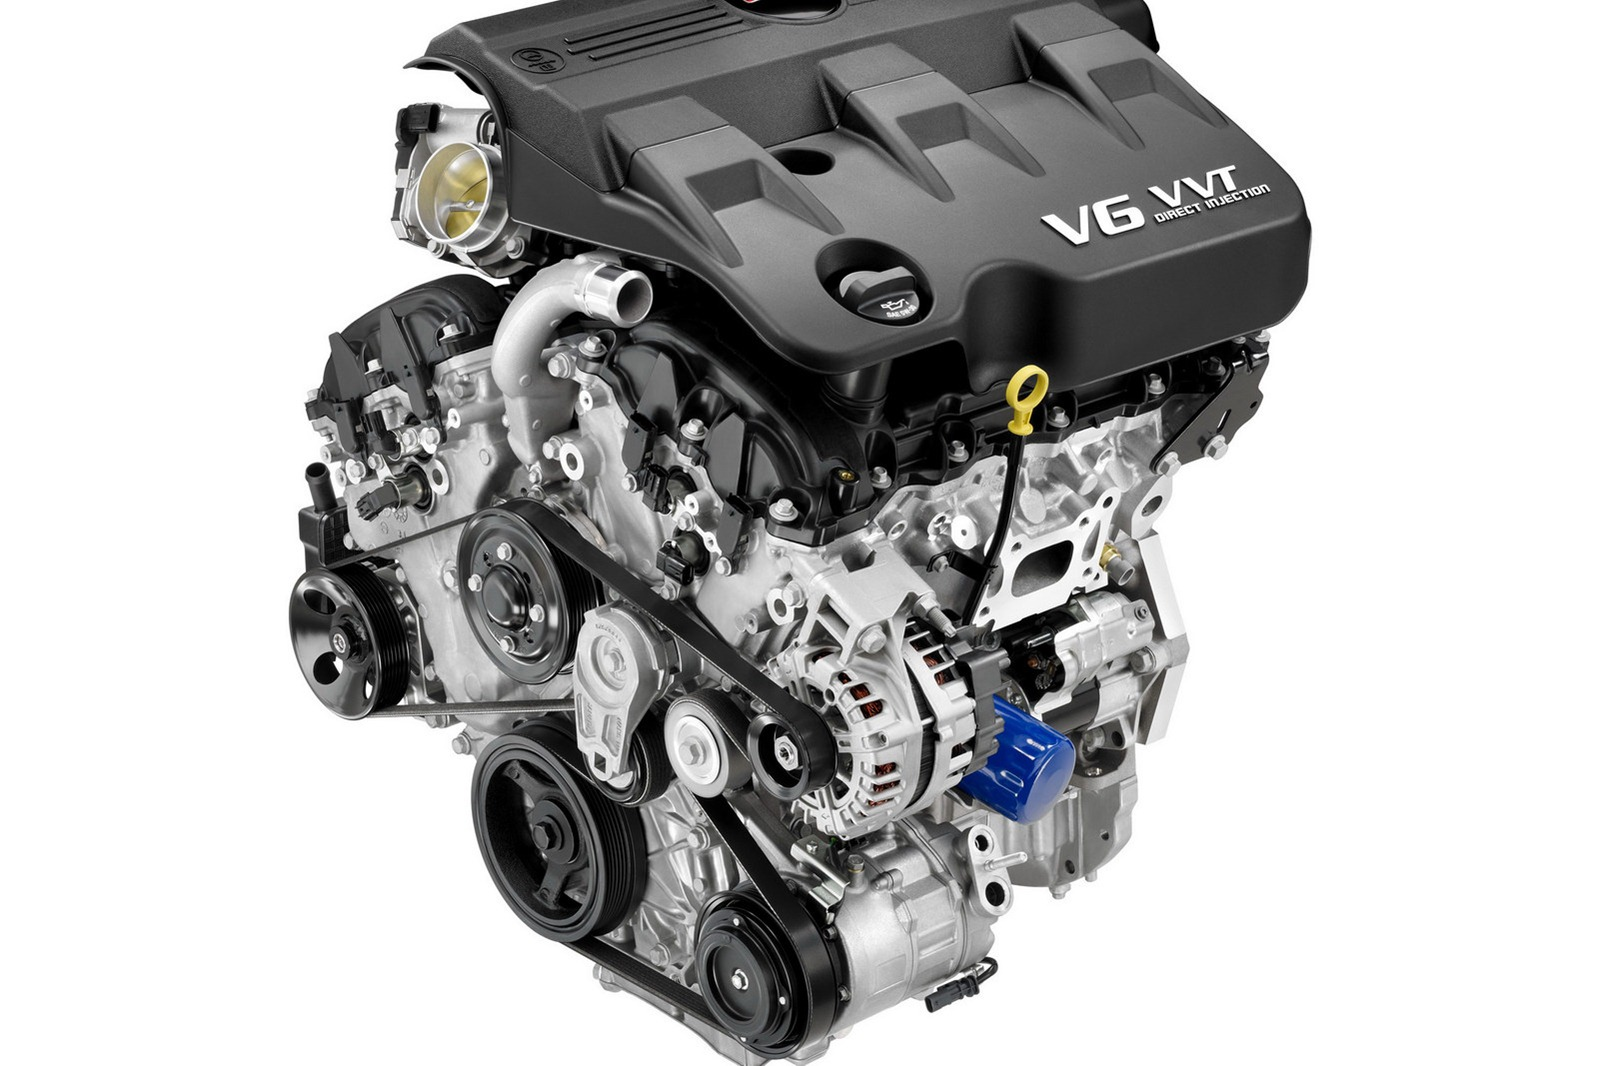 Gmc Terrain Gets Denali Pack And New V Photo Gallery on corvette starter wiring diagram